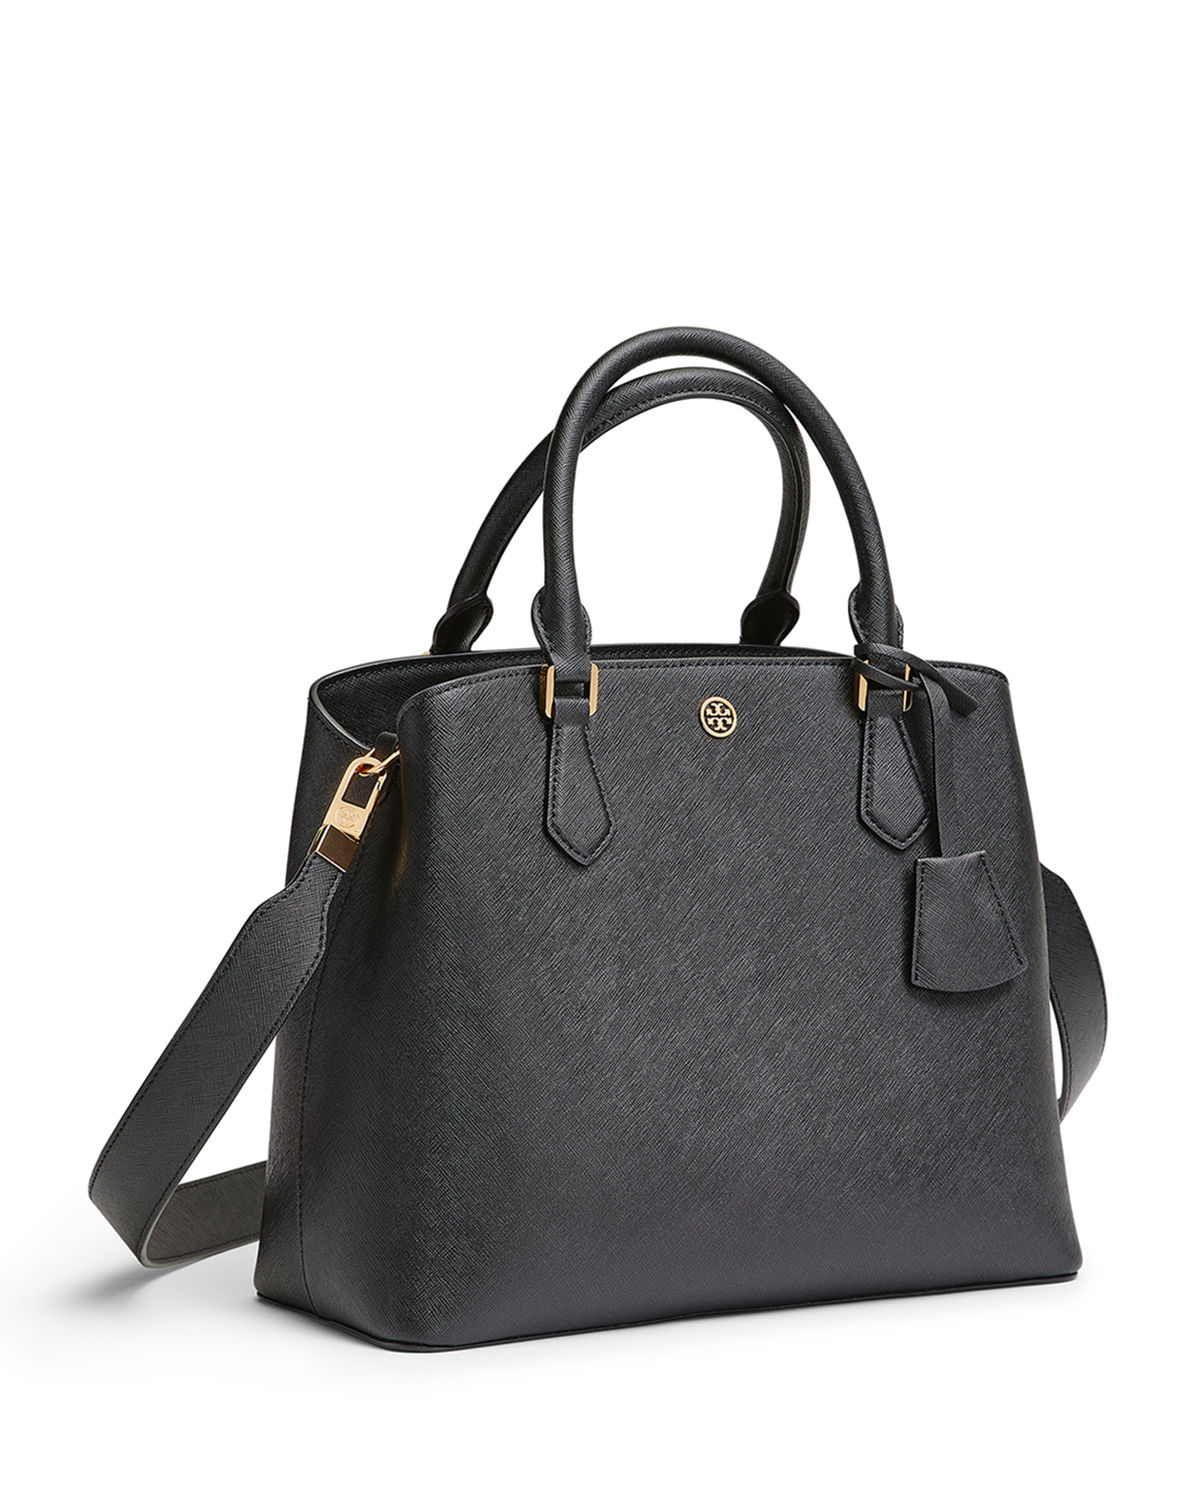 3061a49eed8b Tory Burch Robinson Medium Triple-Compartment Leather Tote Bag ...